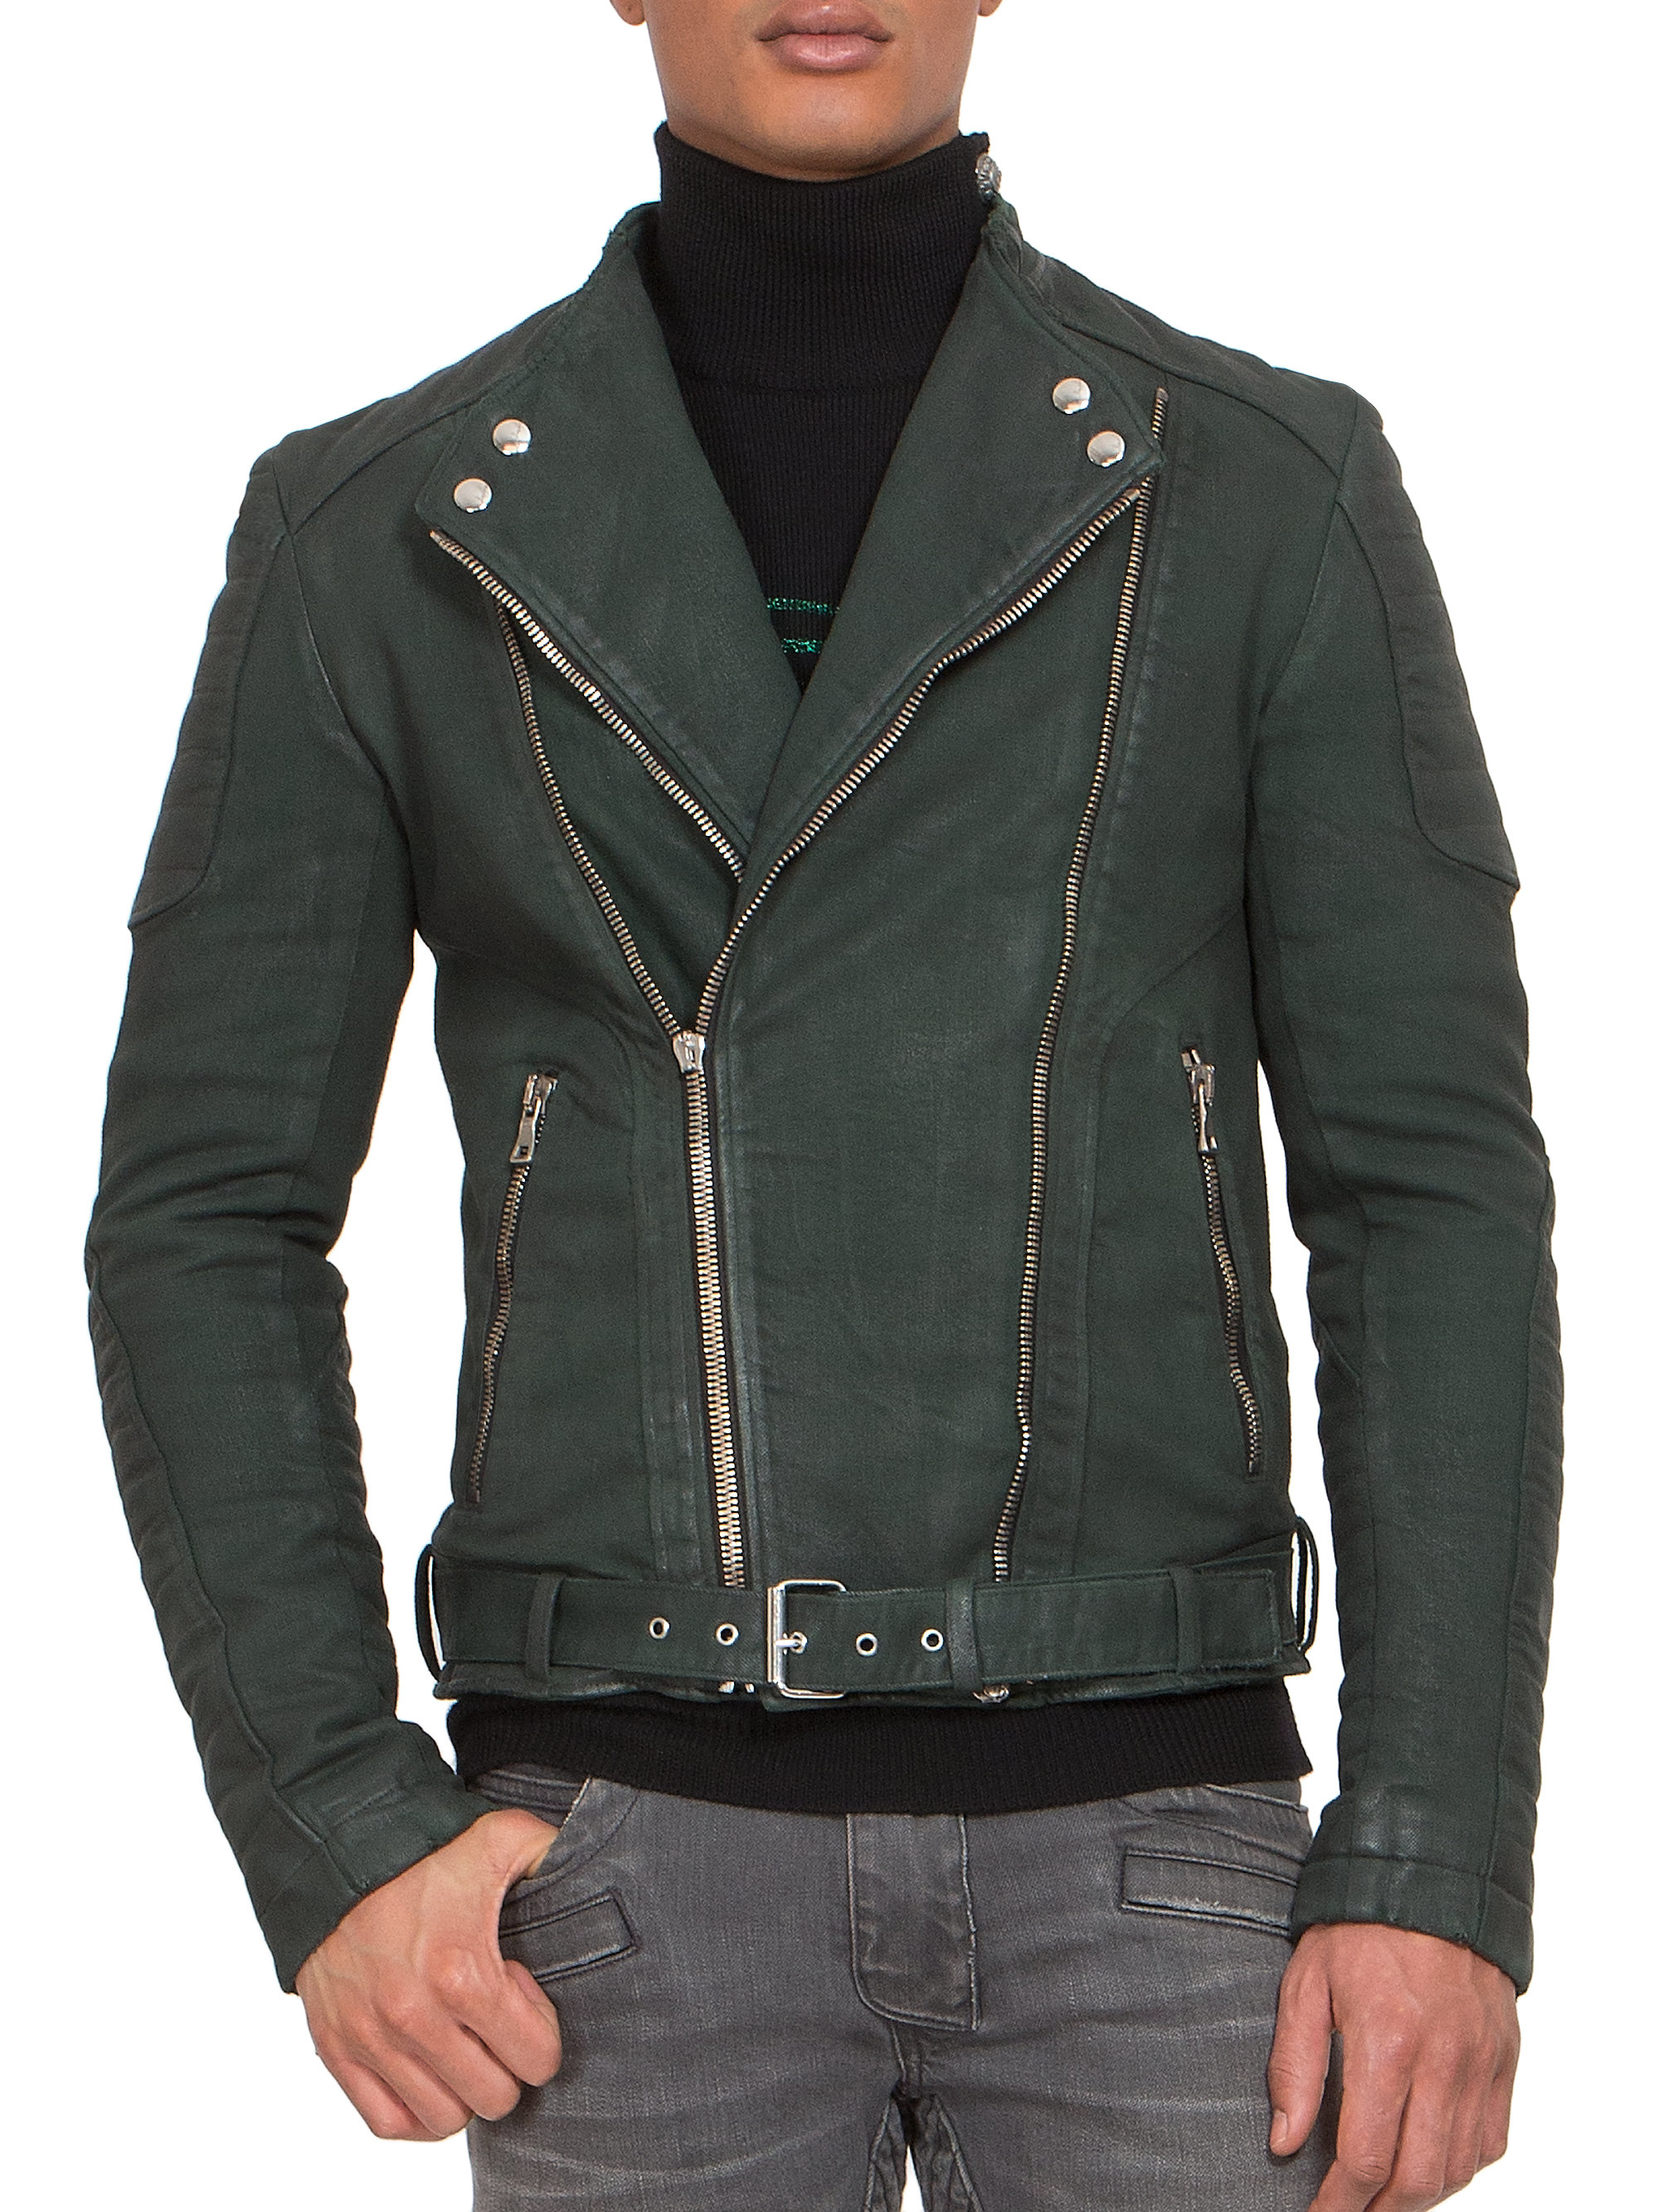 Order quality men's riding apparel, from leather motorcycle jackets & lightweight leather shirts, to insulated riding chaps, from our expansive selection. We have the largest selection of biker denim vests in a variety of styles & sizes available in big sizes up to 12XL so every biker can find a vest that fits!